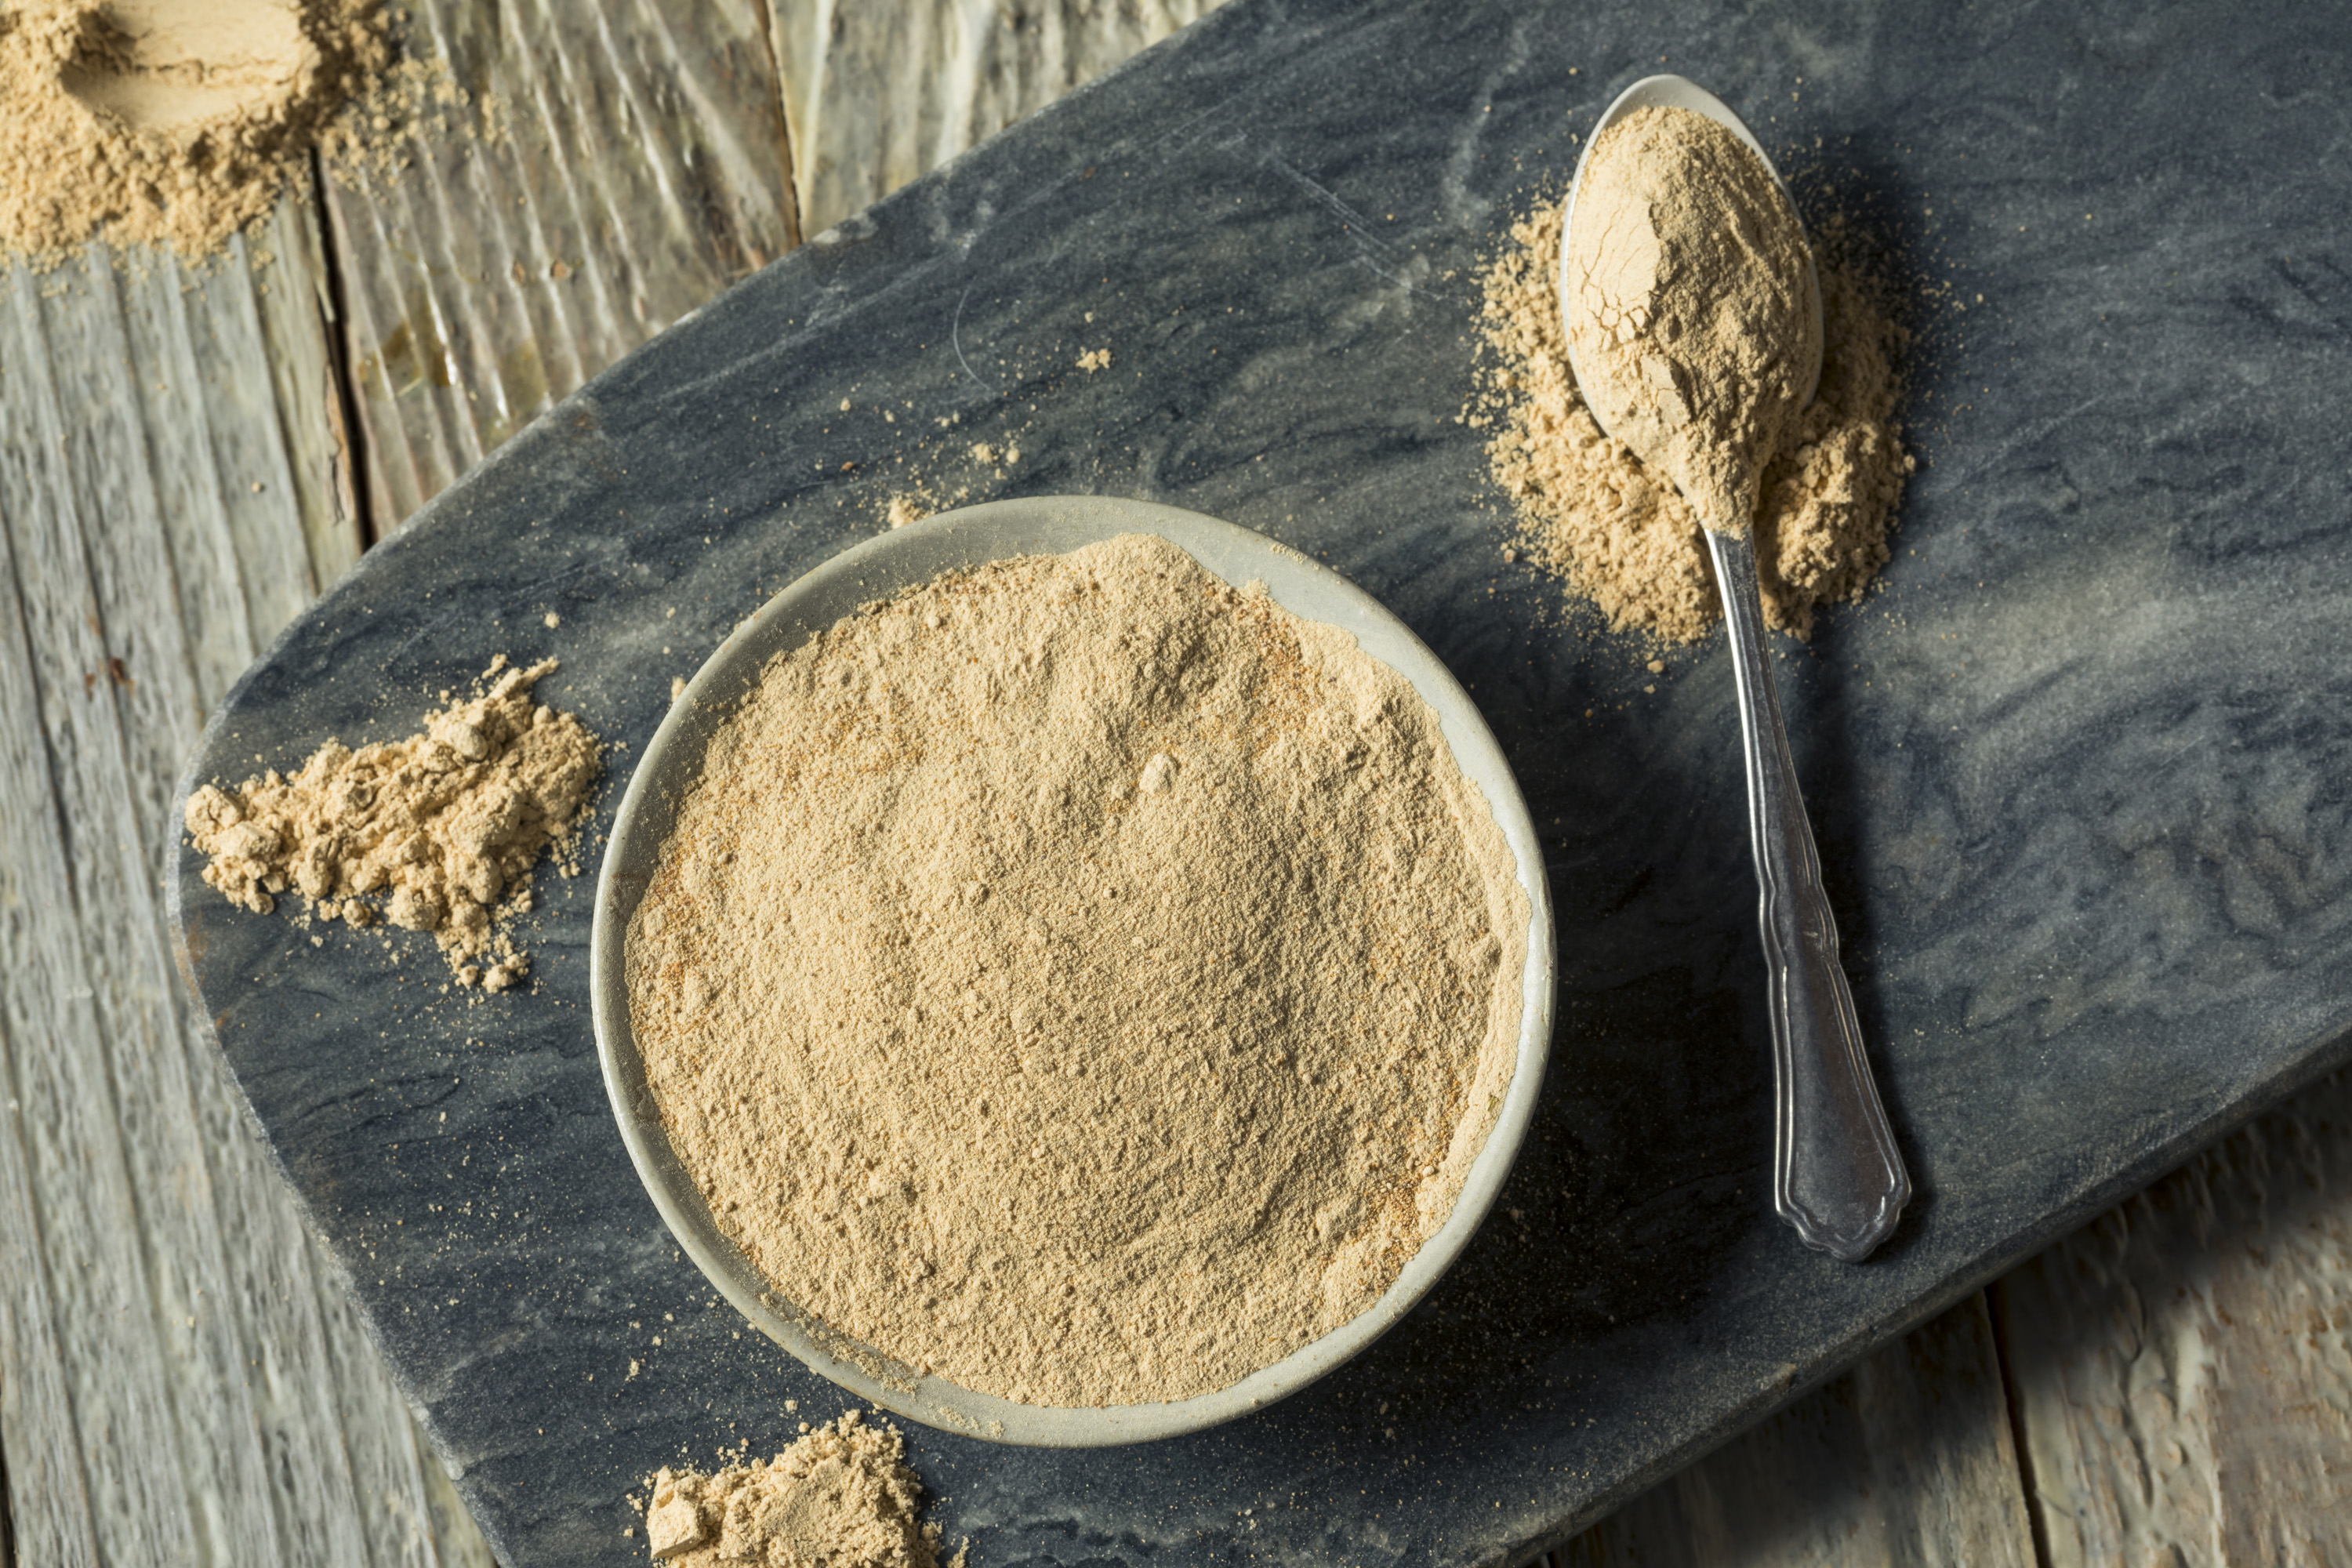 17 Maca Root Benefits + Side Effects, Dosage, Reviews